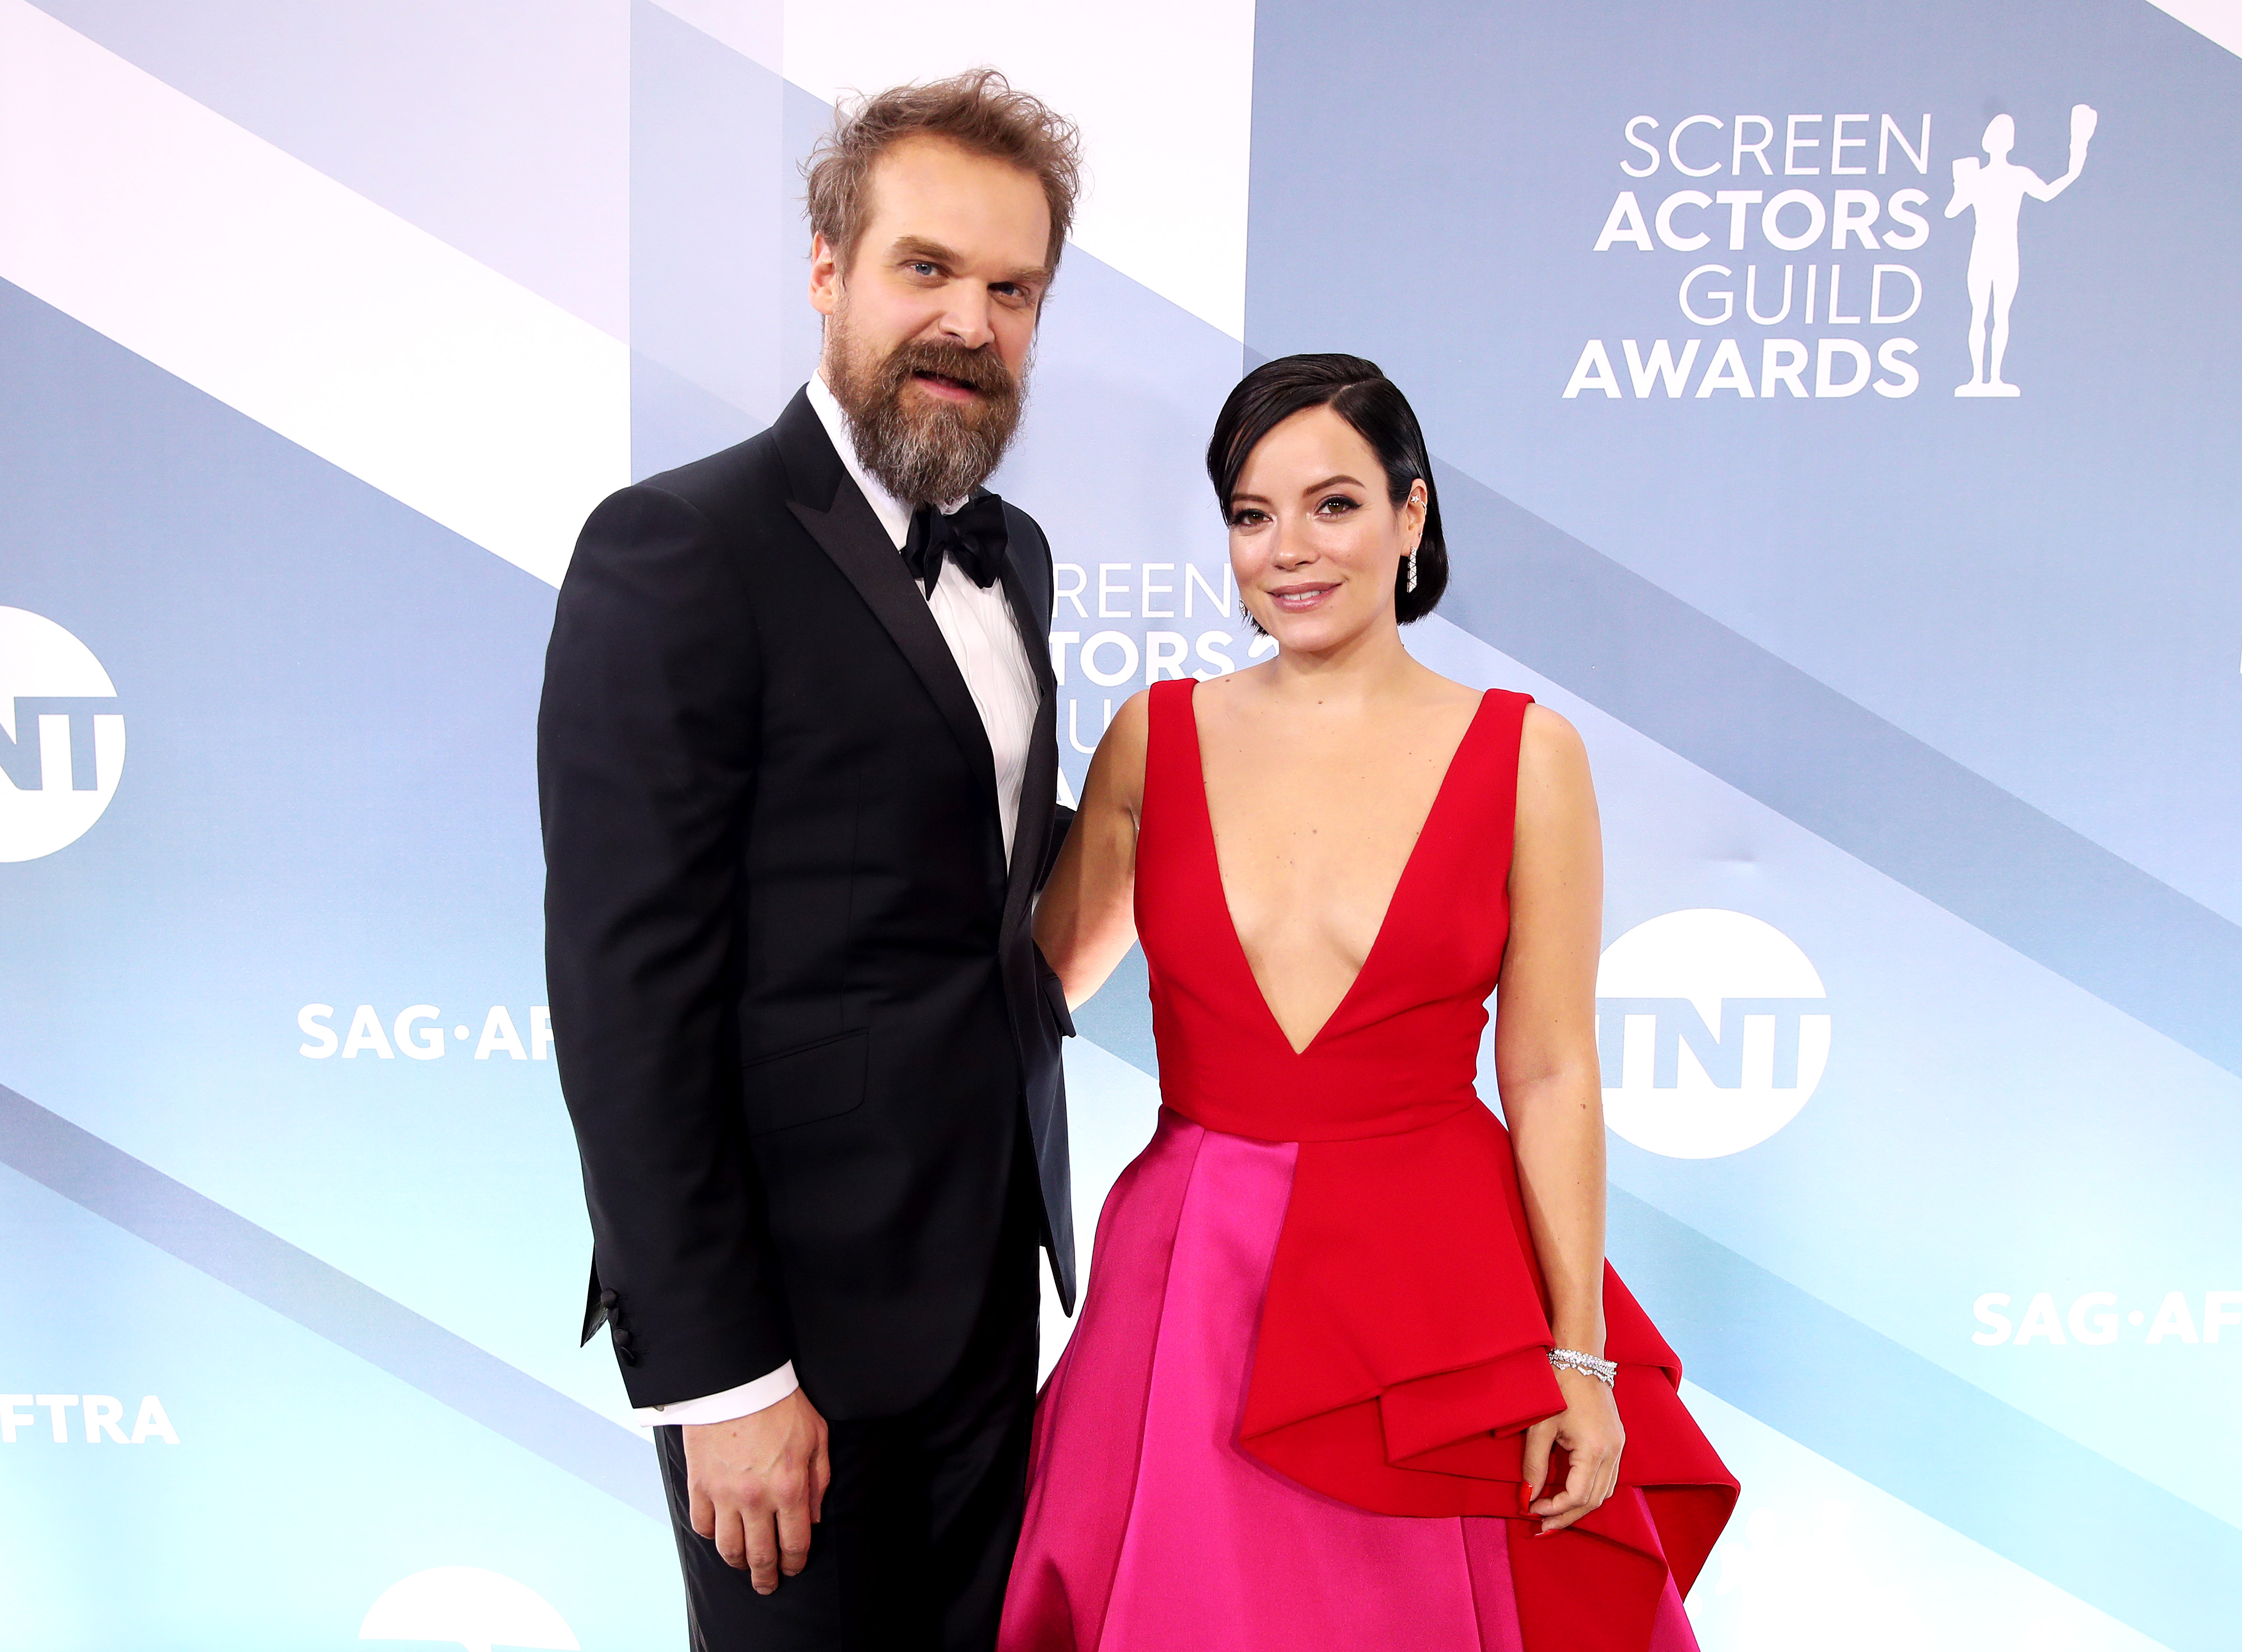 LOS ANGELES, CALIFORNIA - JANUARY 19: (L-R) David Harbour and Lily Allen attend the 26th Annual Screen Actors Guild Awards at The Shrine Auditorium on January 19, 2020 in Los Angeles, California. (Photo by Rich Fury/Getty Images)